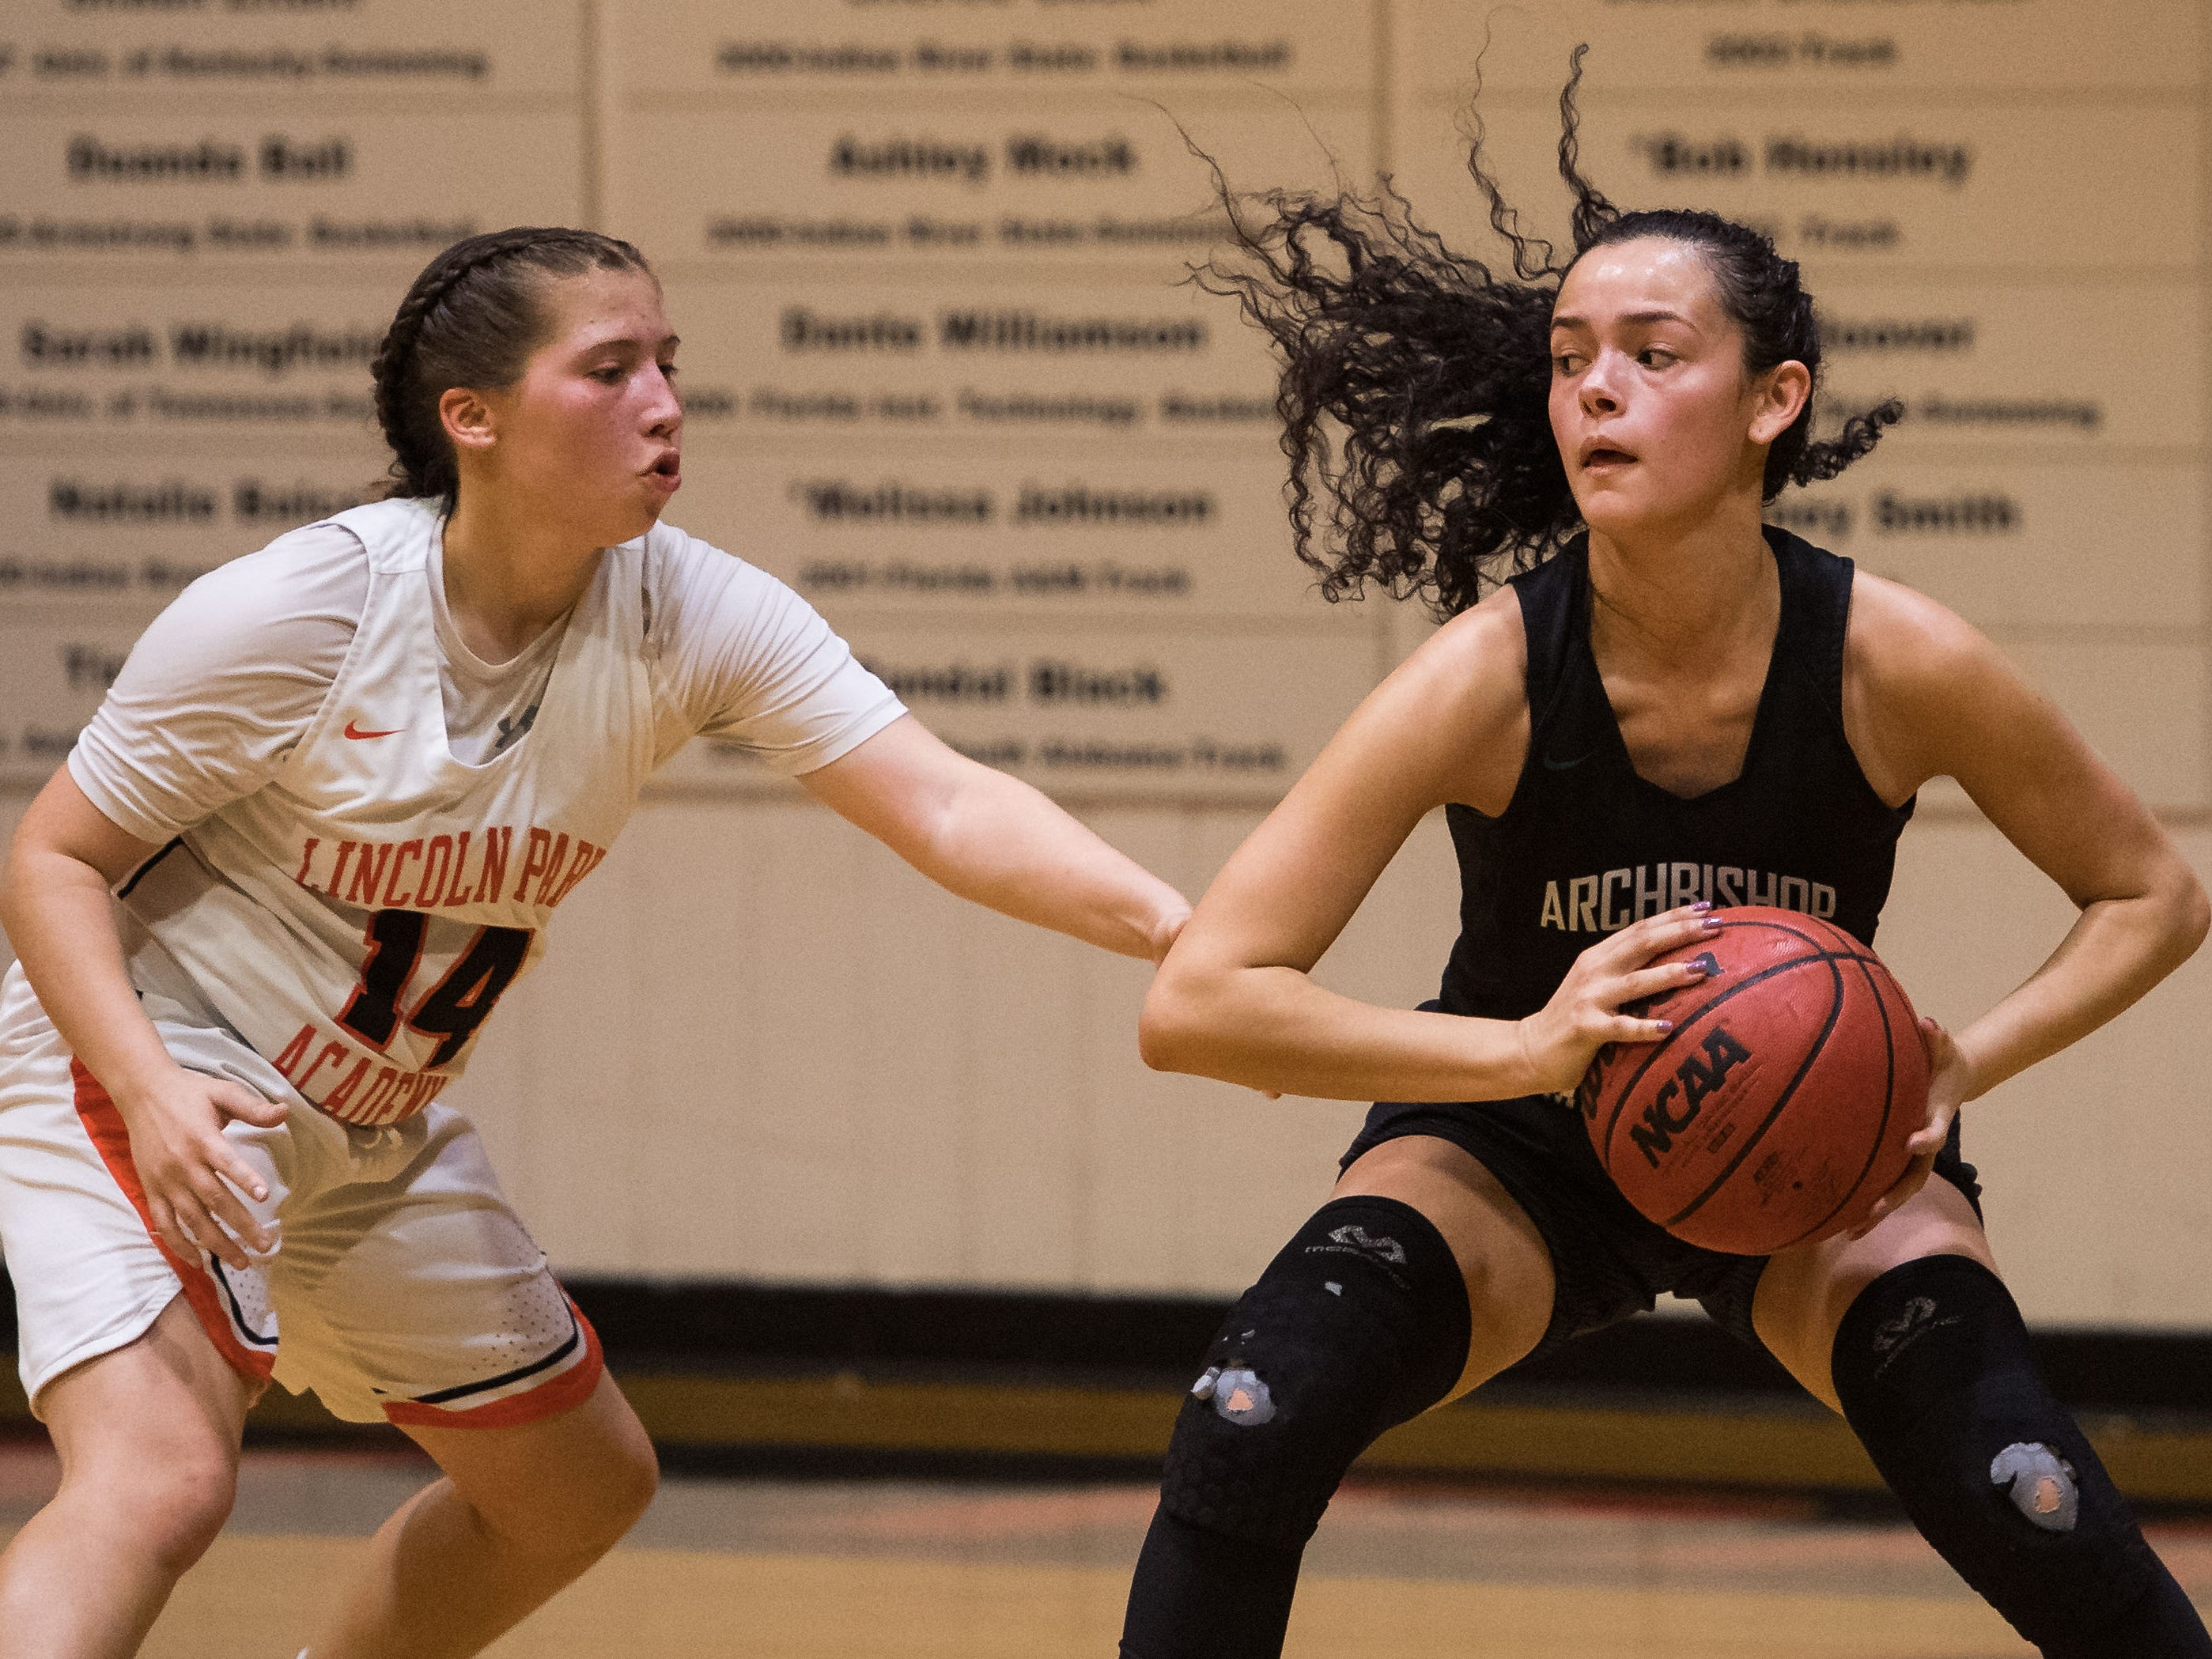 Lincoln Park Academy's Sophia Marrero (left) guards Archbishop McCarthy (Fort Lauderdale) player Vanessa Grimaldo closely during the fourth period of the high school girls basketball regional quarterfinal game Thursday, Feb. 14, 2019, Lincoln Park Academy in Fort Pierce.